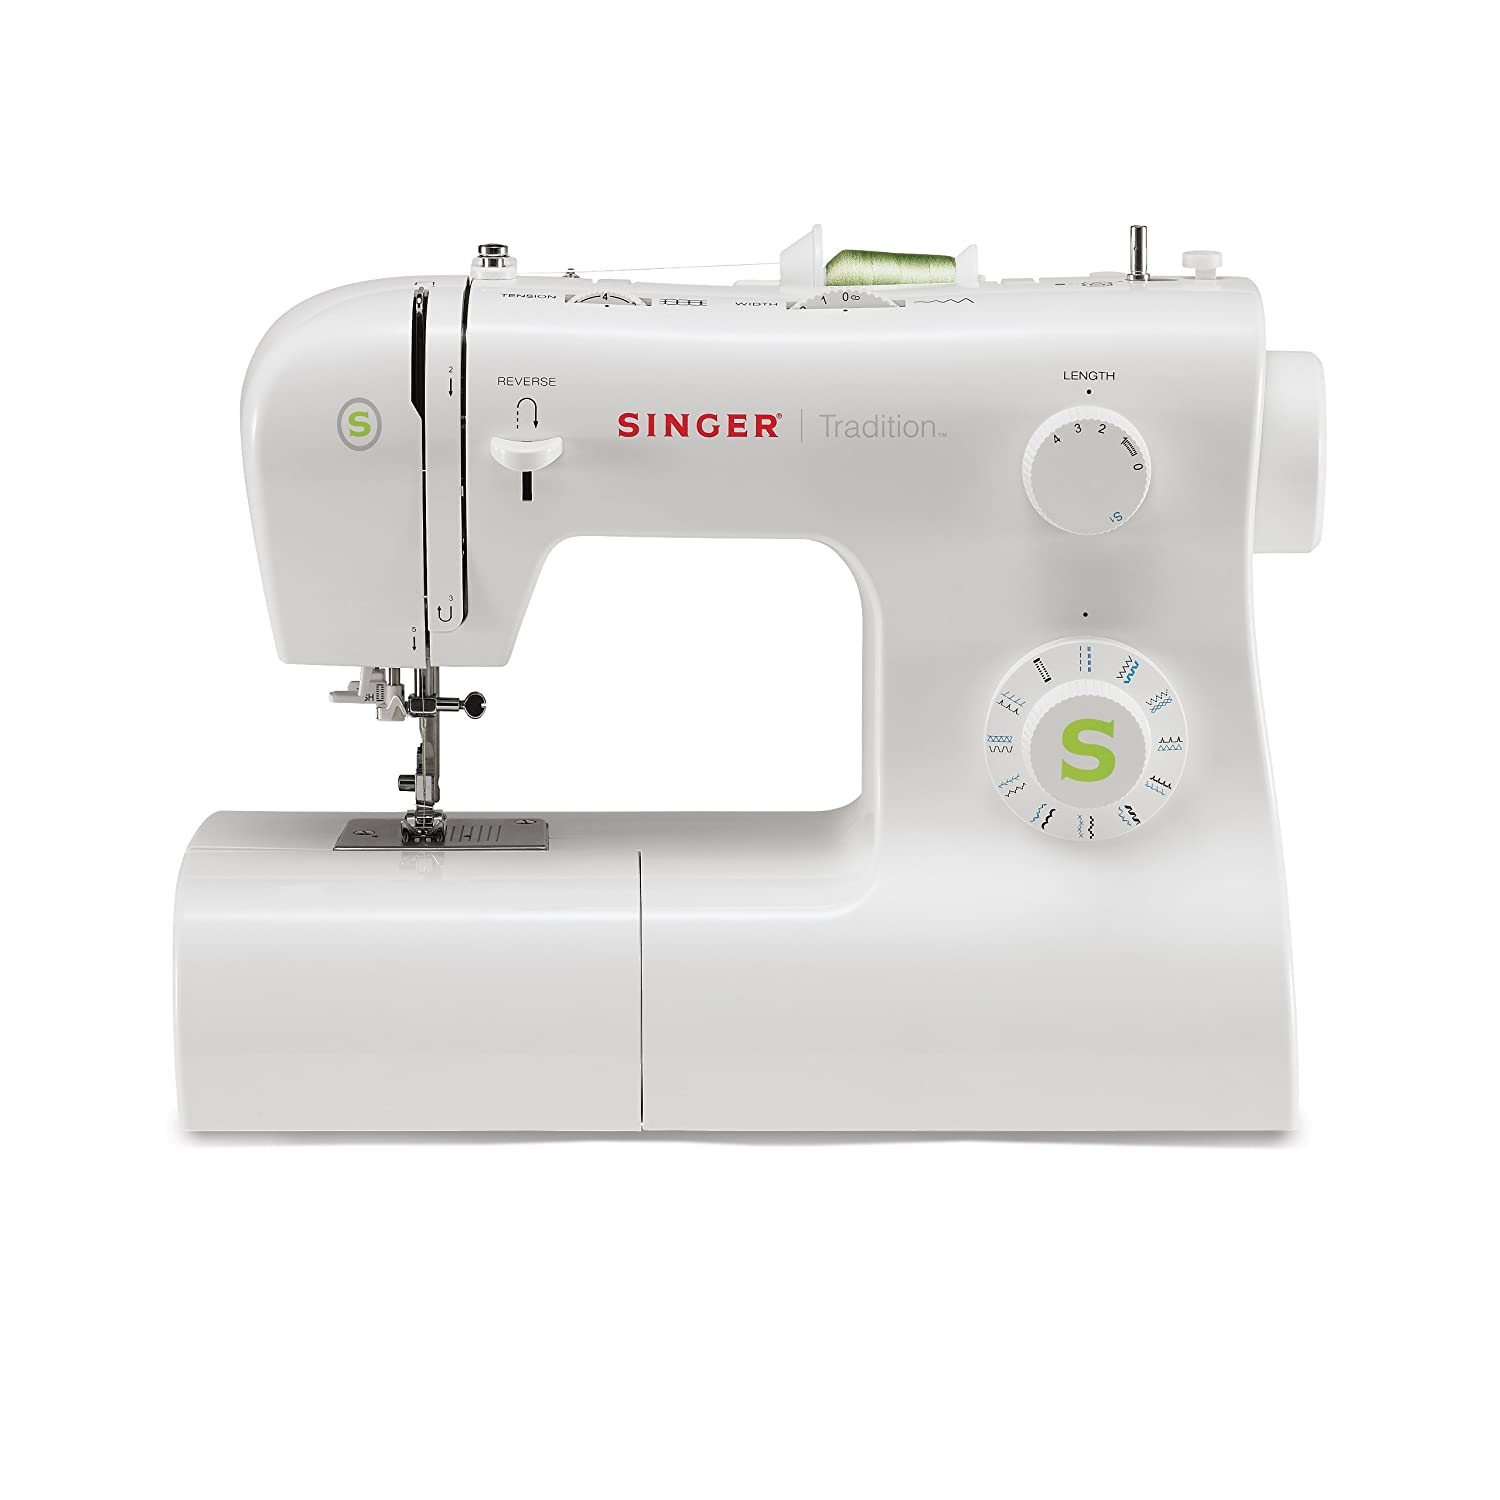 Top 10 Best Heavy Duty Sewing Machine Reviews in 2020 10